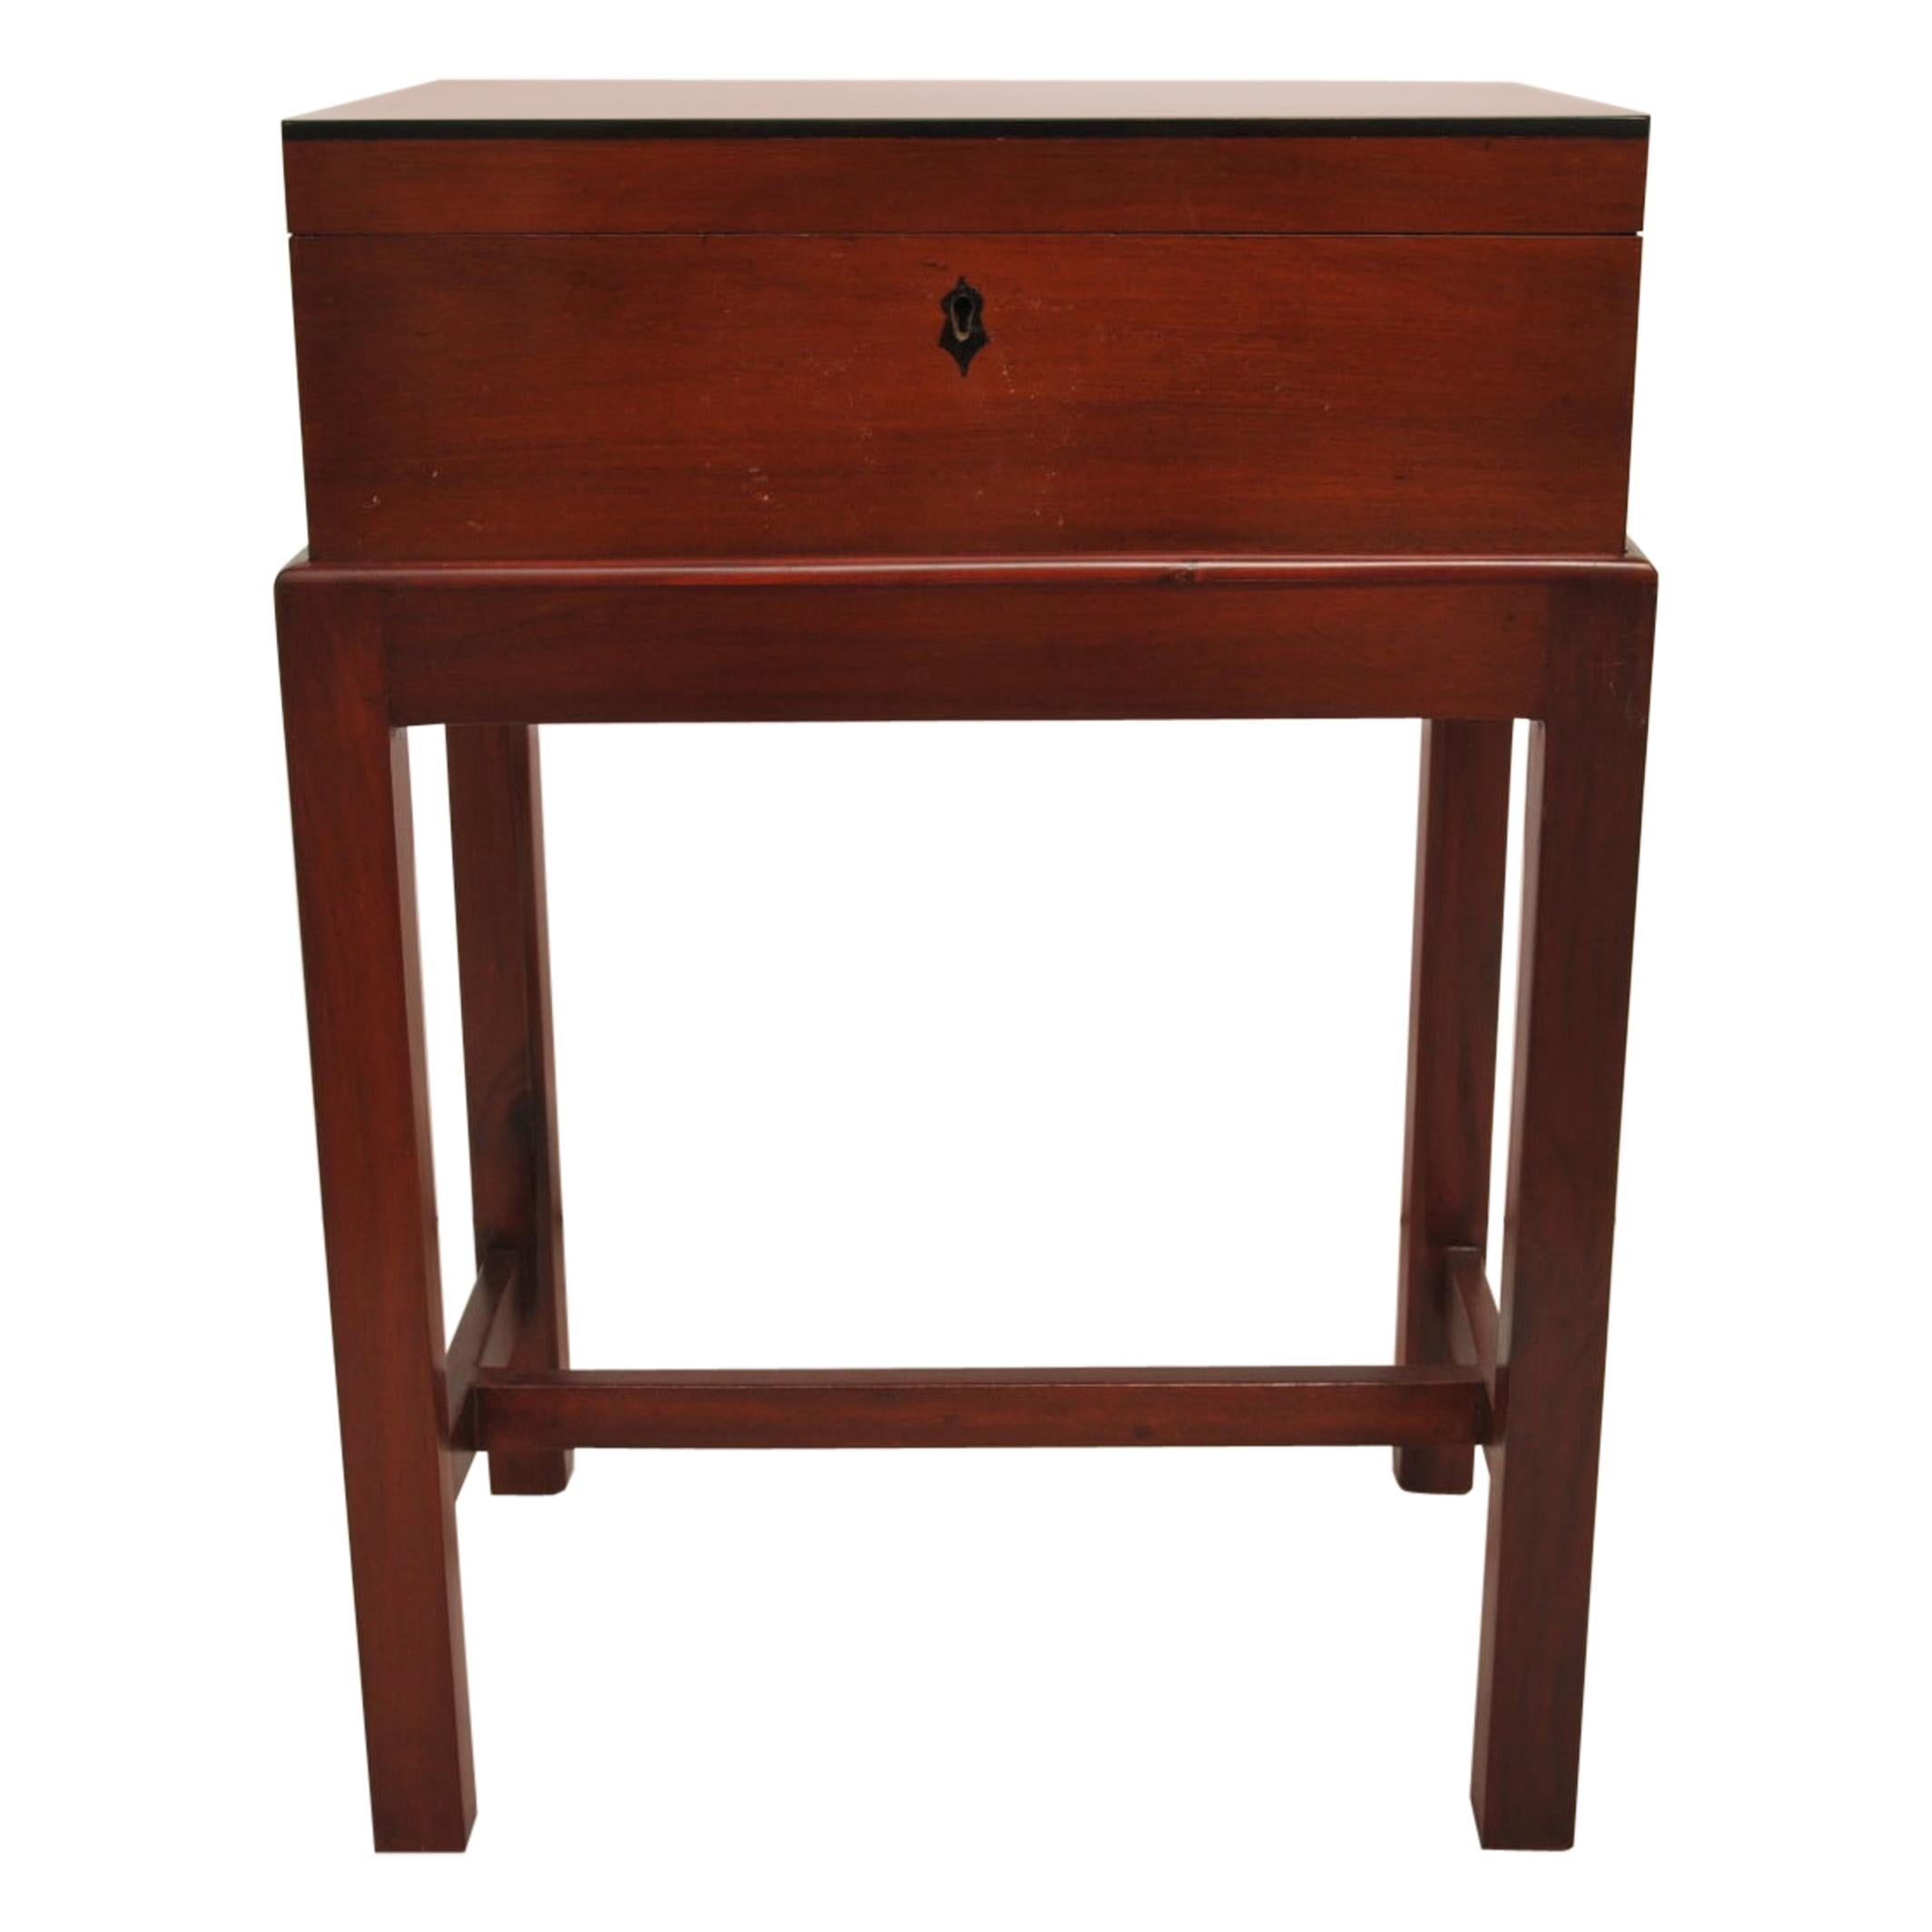 British Campaign Mahogany and Ebony Officer's Box or Chest on Stand, Early 1900